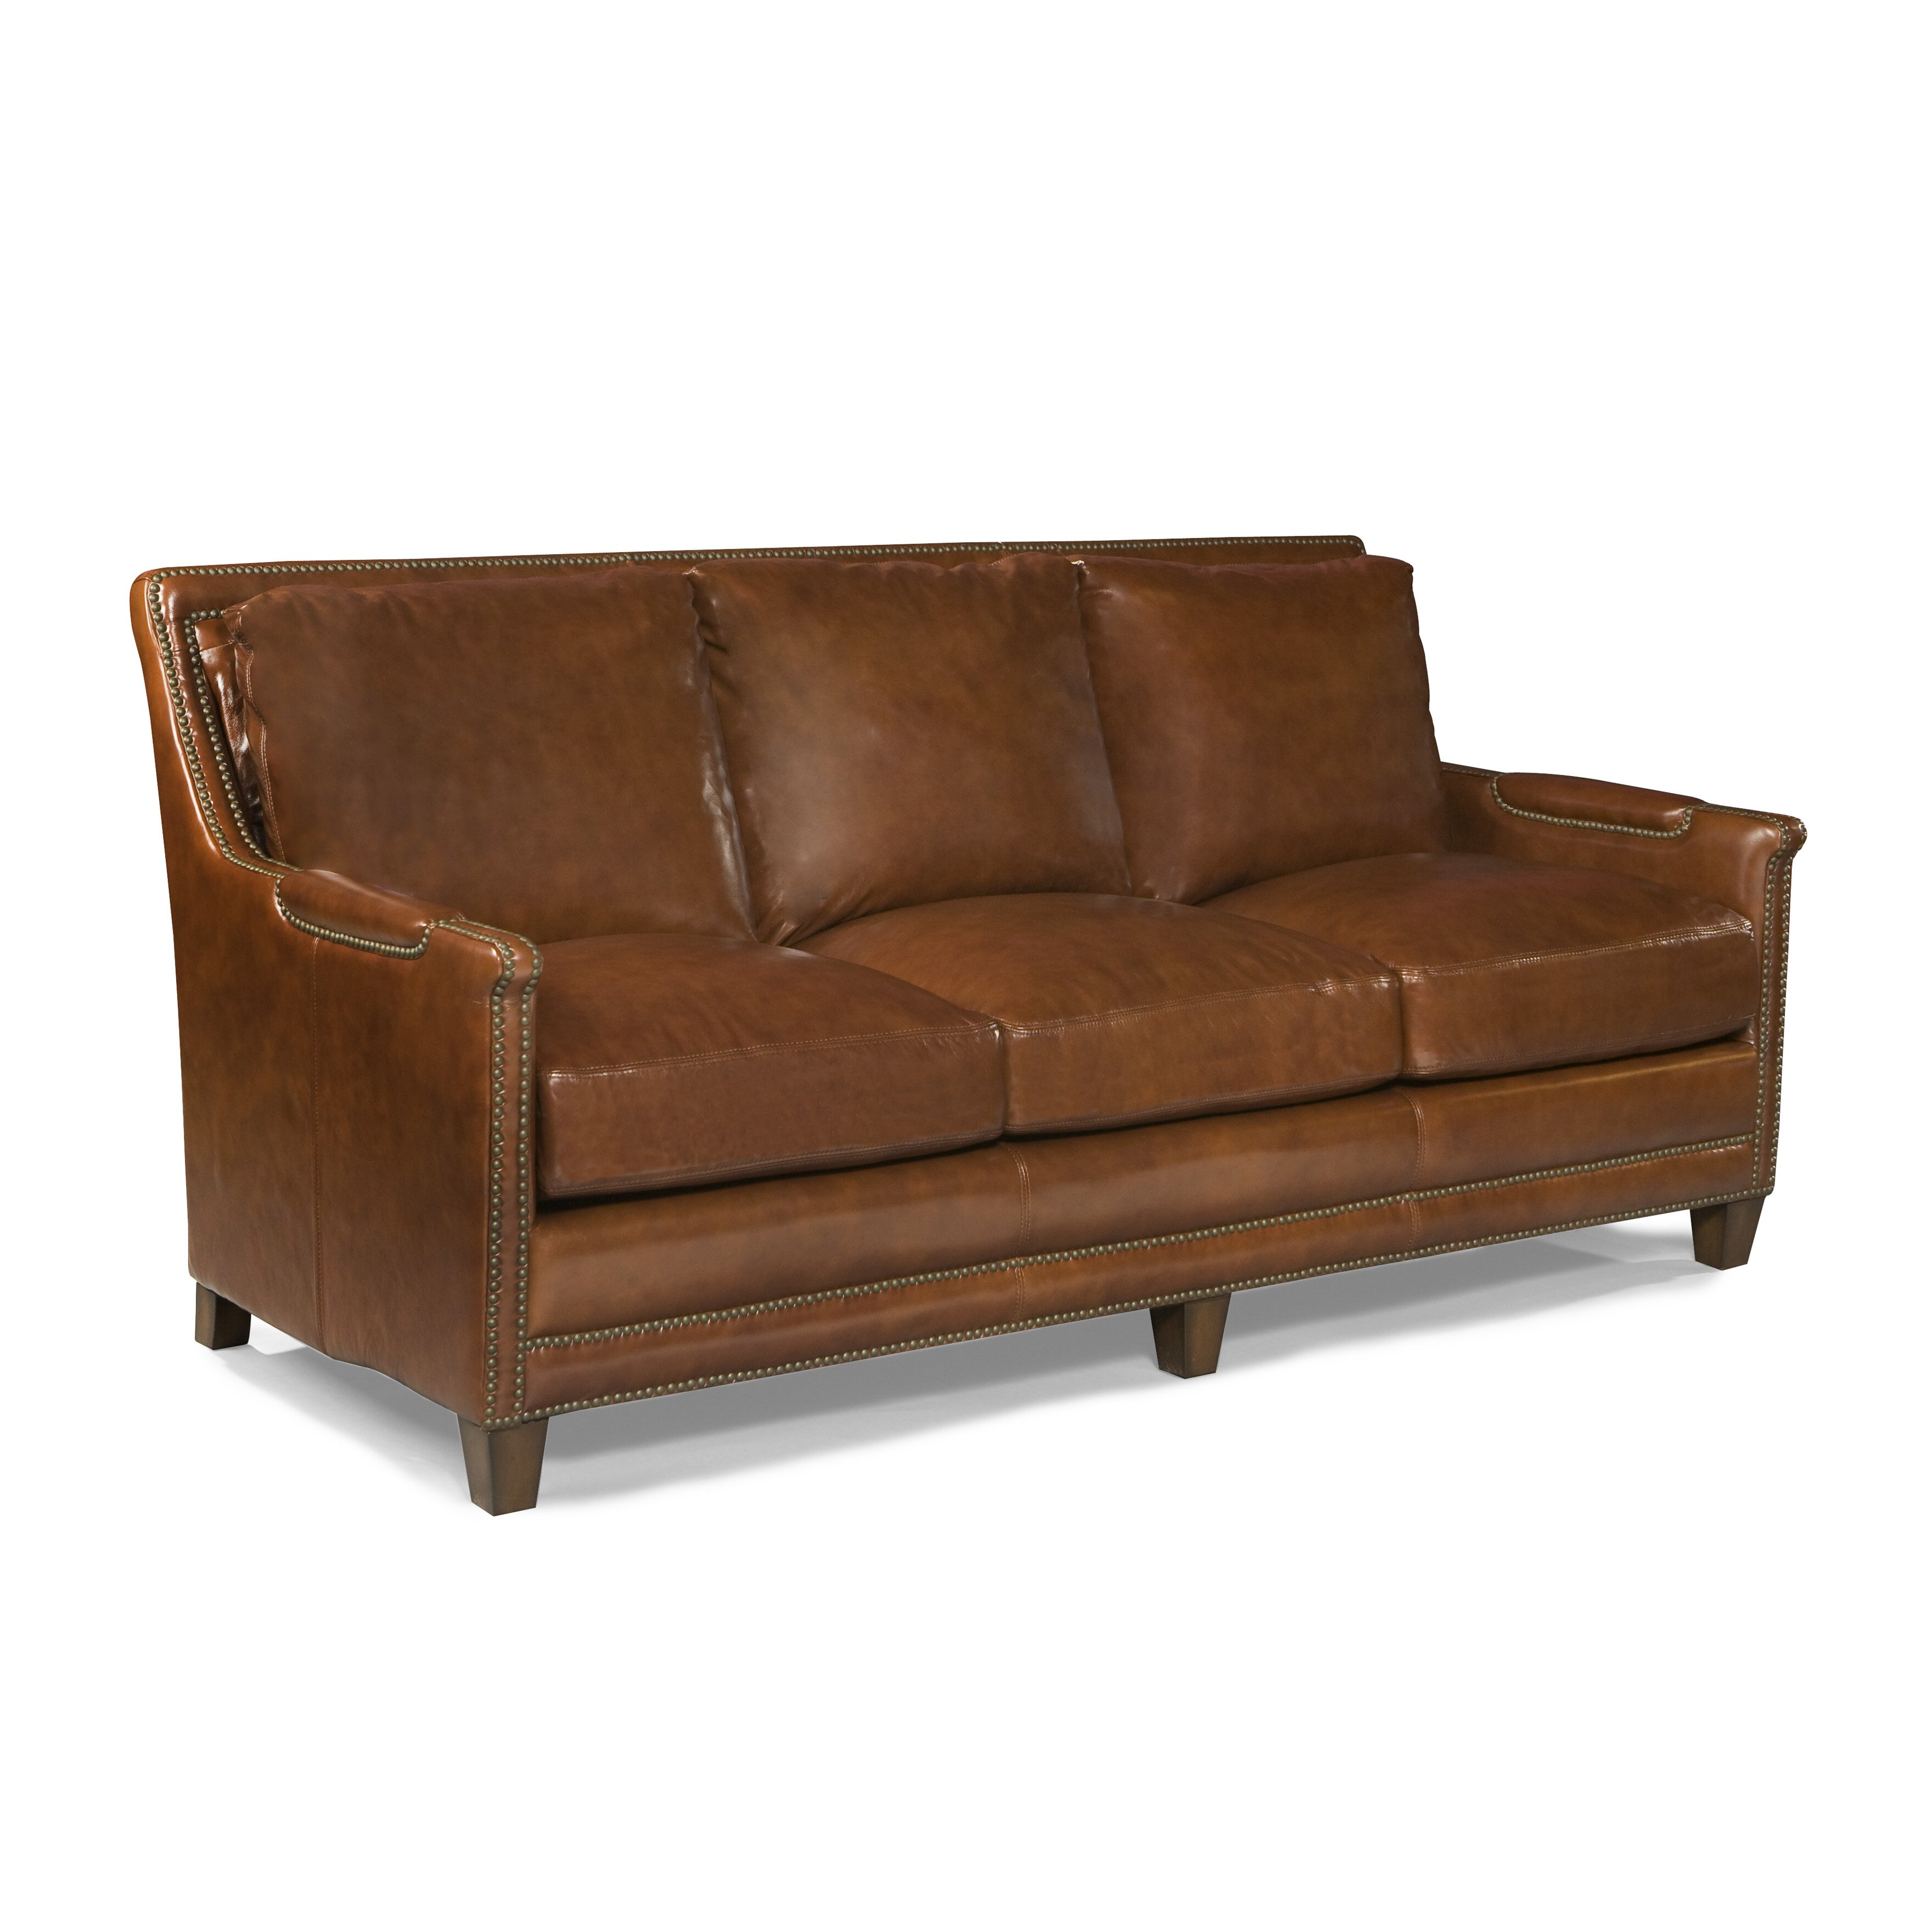 Palatial Furniture Prescott Leather Sofa & Reviews | Wayfair